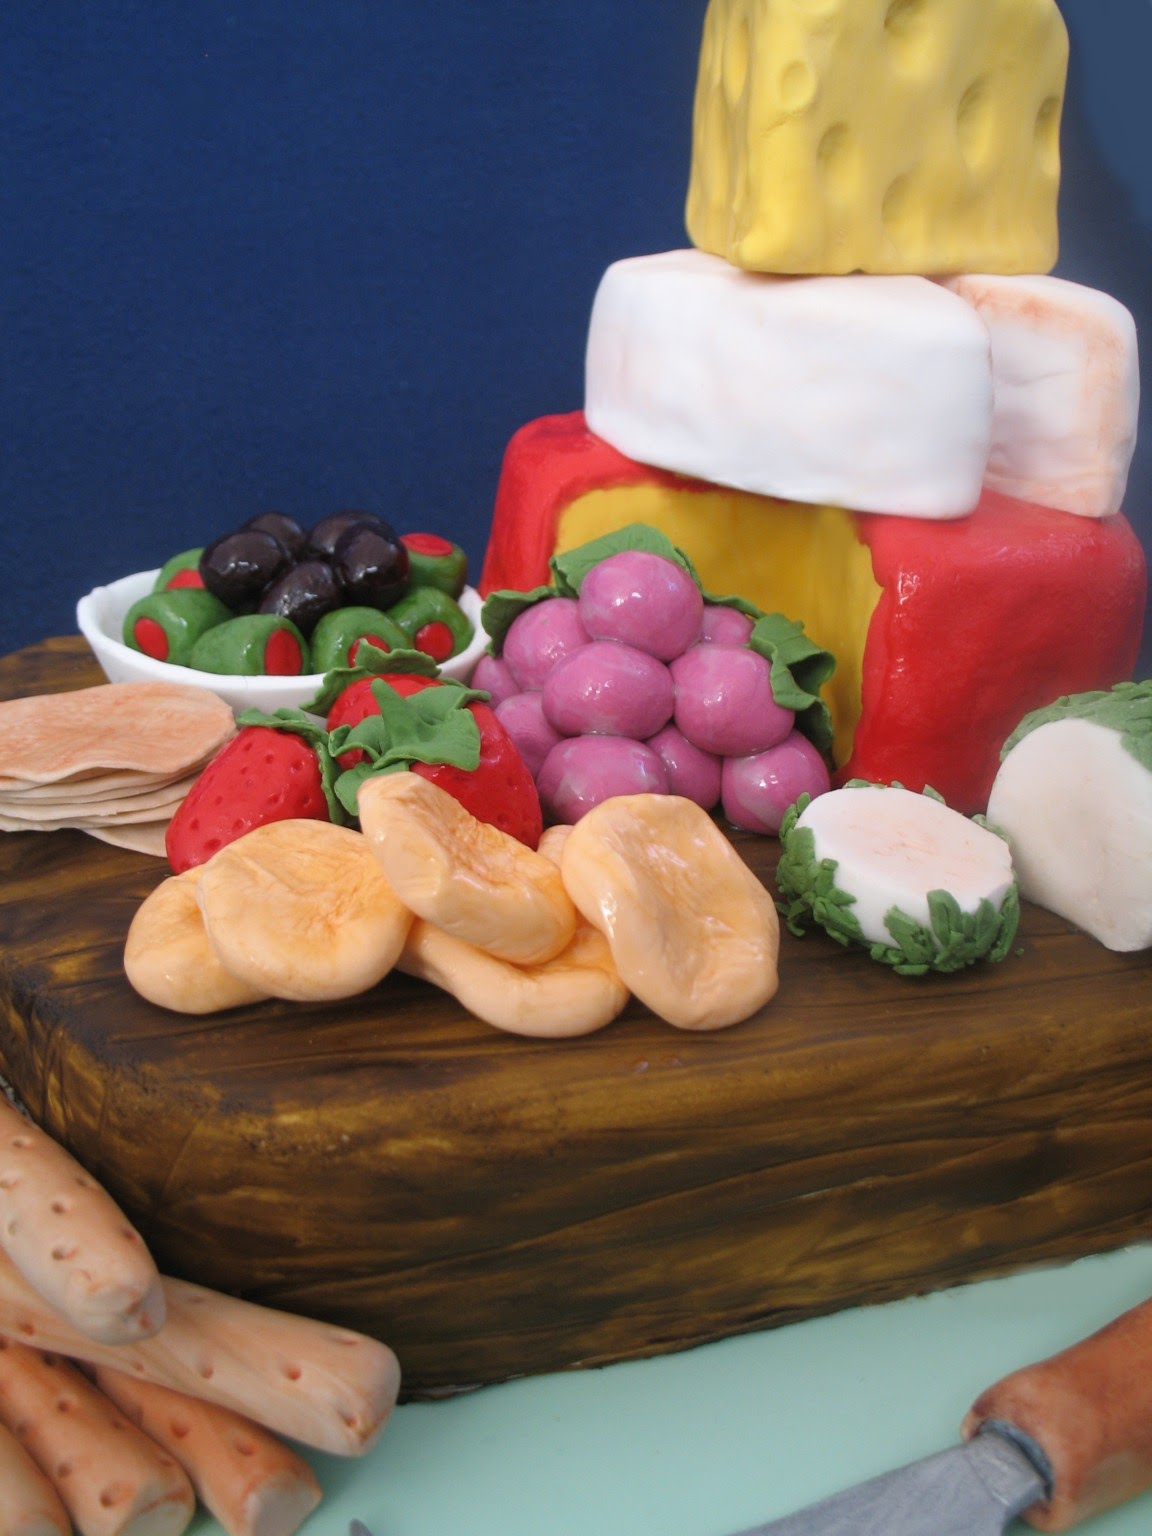 The cheese knife, bread sticks, dried apricots, strawberries, crackers ...